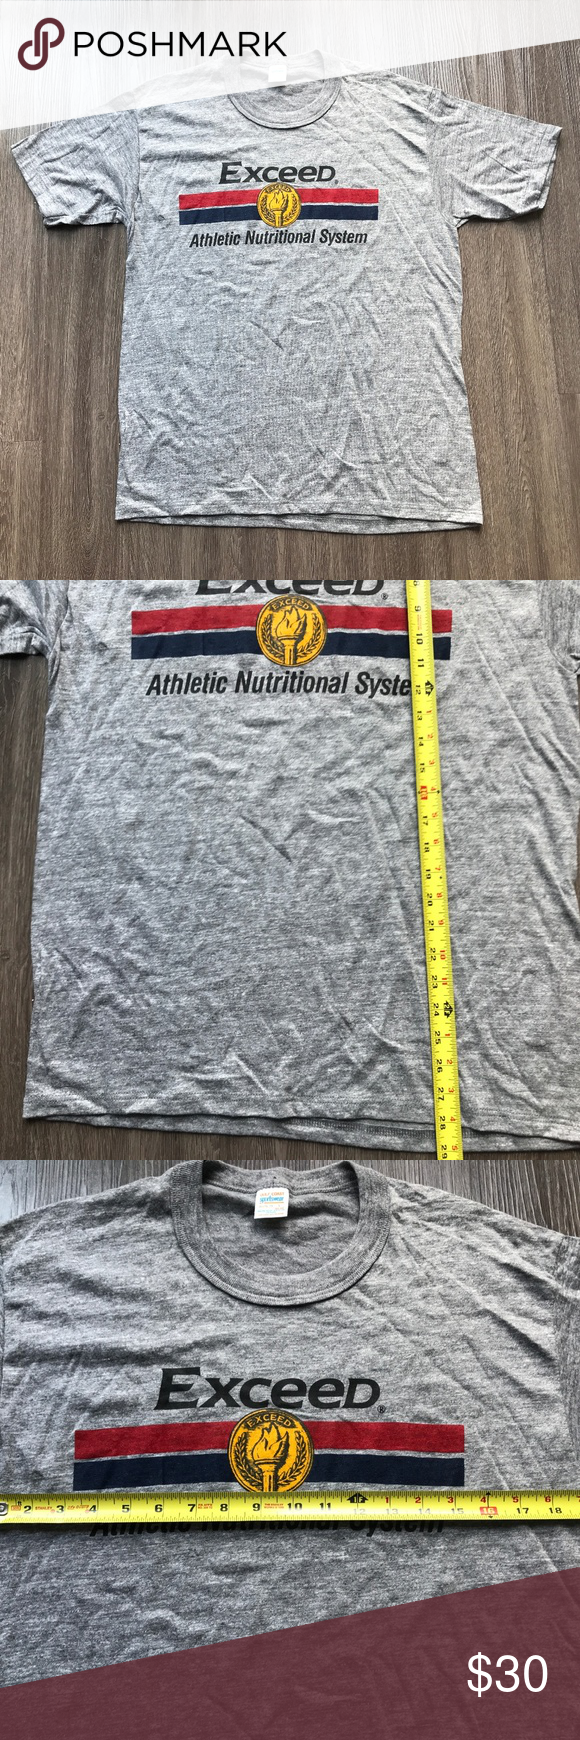 Vintage 80s Exceed Athletic Nutritional Tshirt Up for Sale is a Vtg 80s Deadstock Exceed Athletic Nutritional System T-Shirt USA Gray     Item Condition:    Excellent: Excellent condition has been previously worn and have only very slight wash wear. No flaws. Comes From A Pet/Smoke Free Home!  Size L     All items will ship within 1 business day via USPS with tracking   Please feel free to ask questions you may have.    Inventory Ae021 Shirts Tees - Short Sleeve #athletenutrition